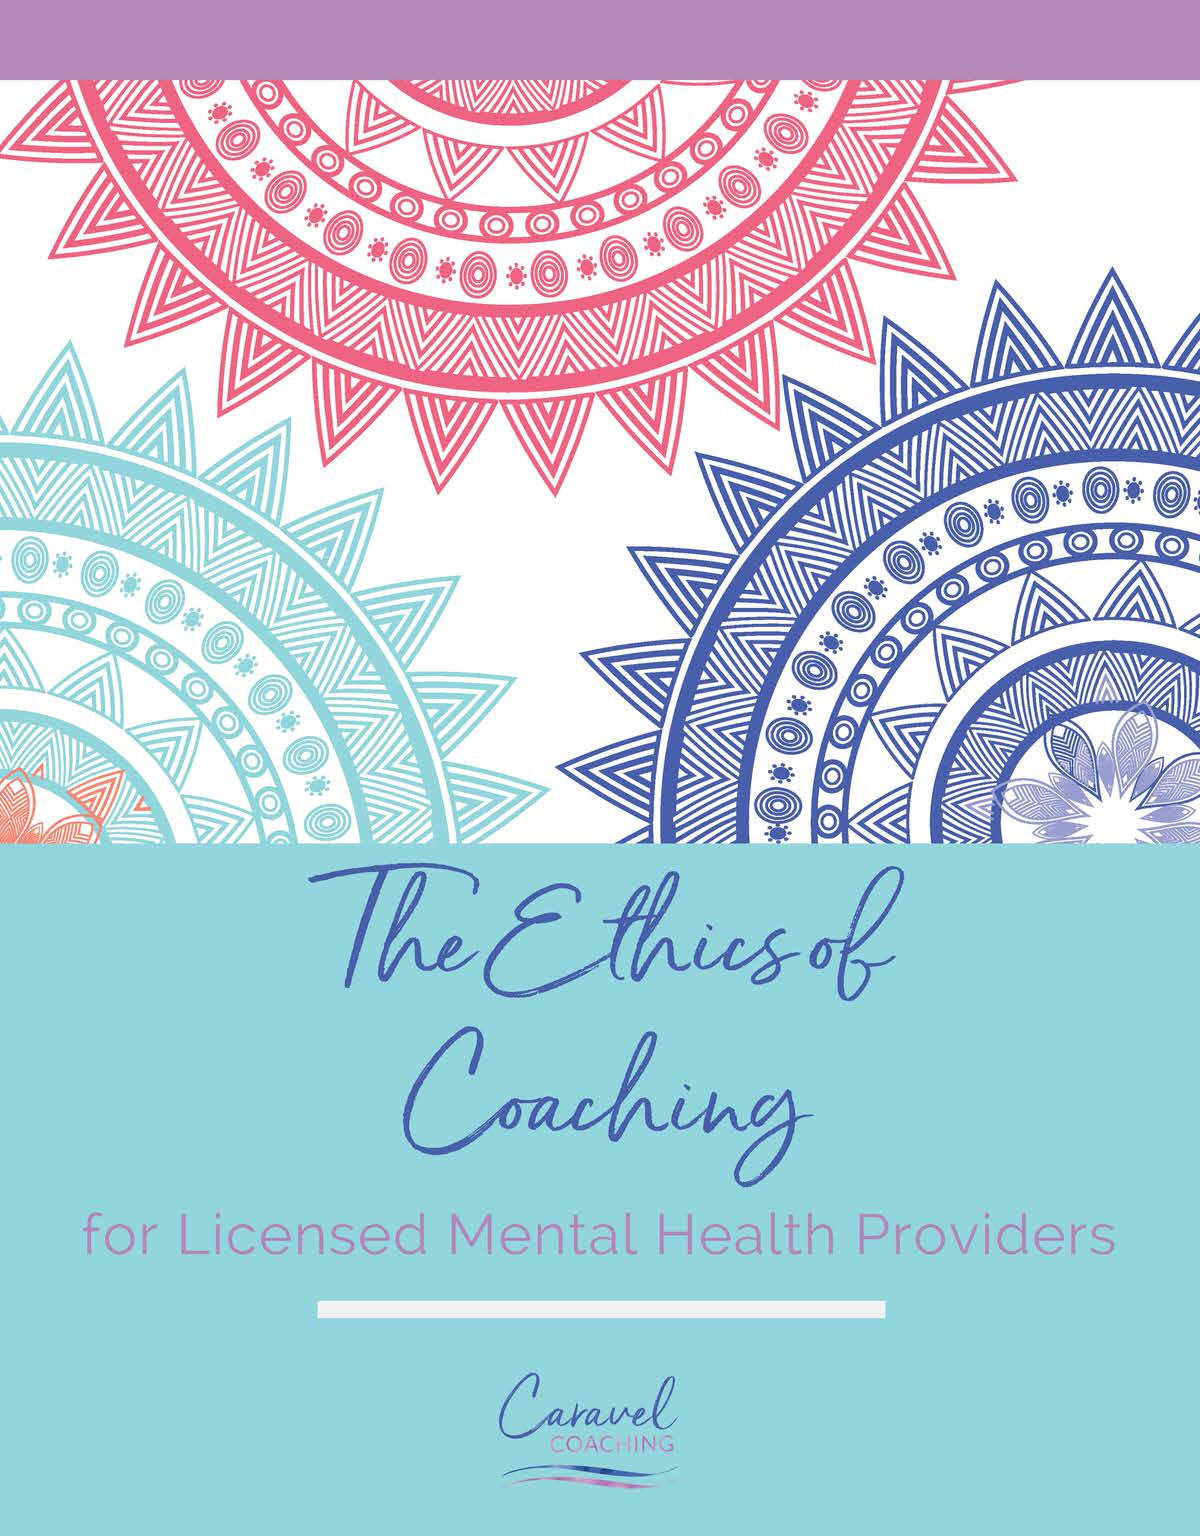 Therapists and Coaching - Is it Ethical -- Caravel Coaching